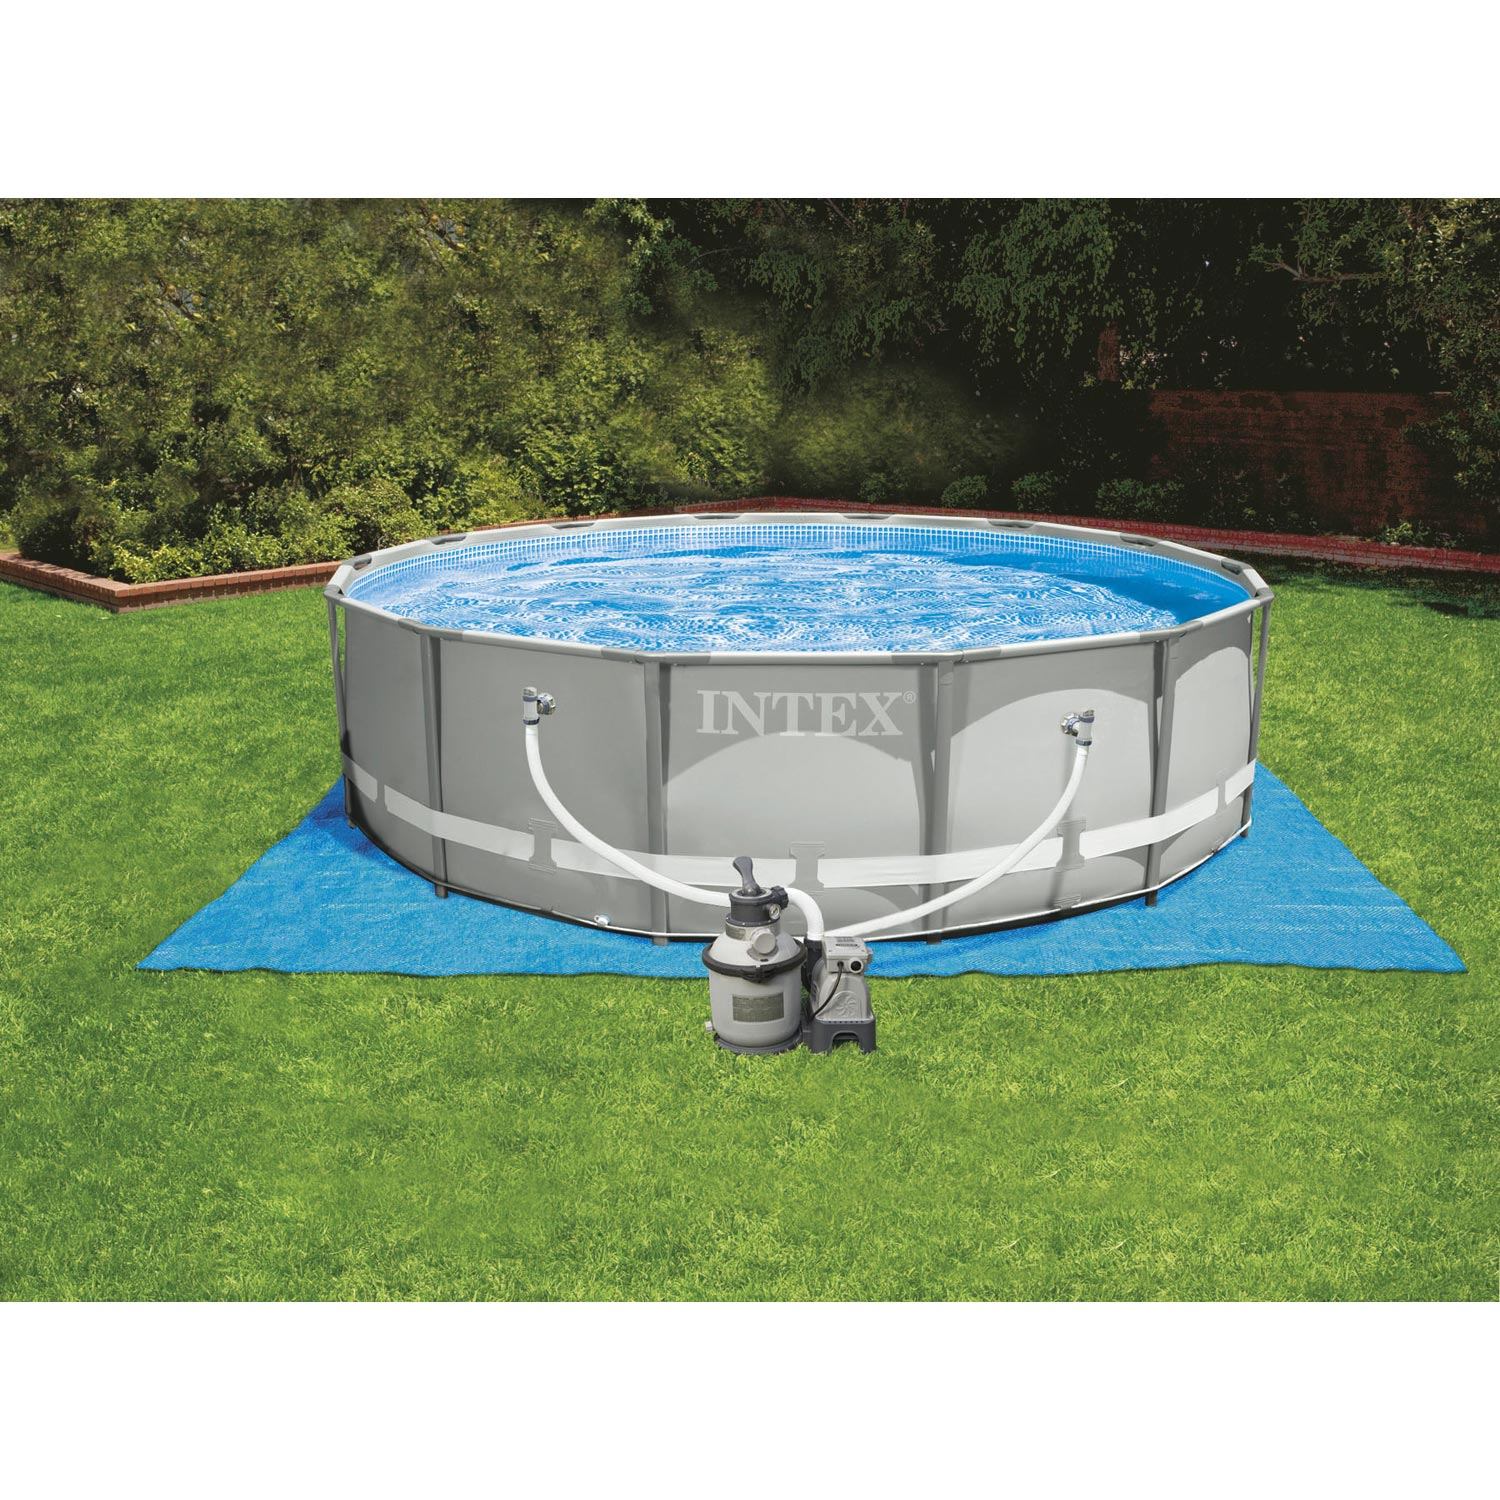 Piscine hors sol autoportante tubulaire ultra frame intex for Piscine hors sol autoportee